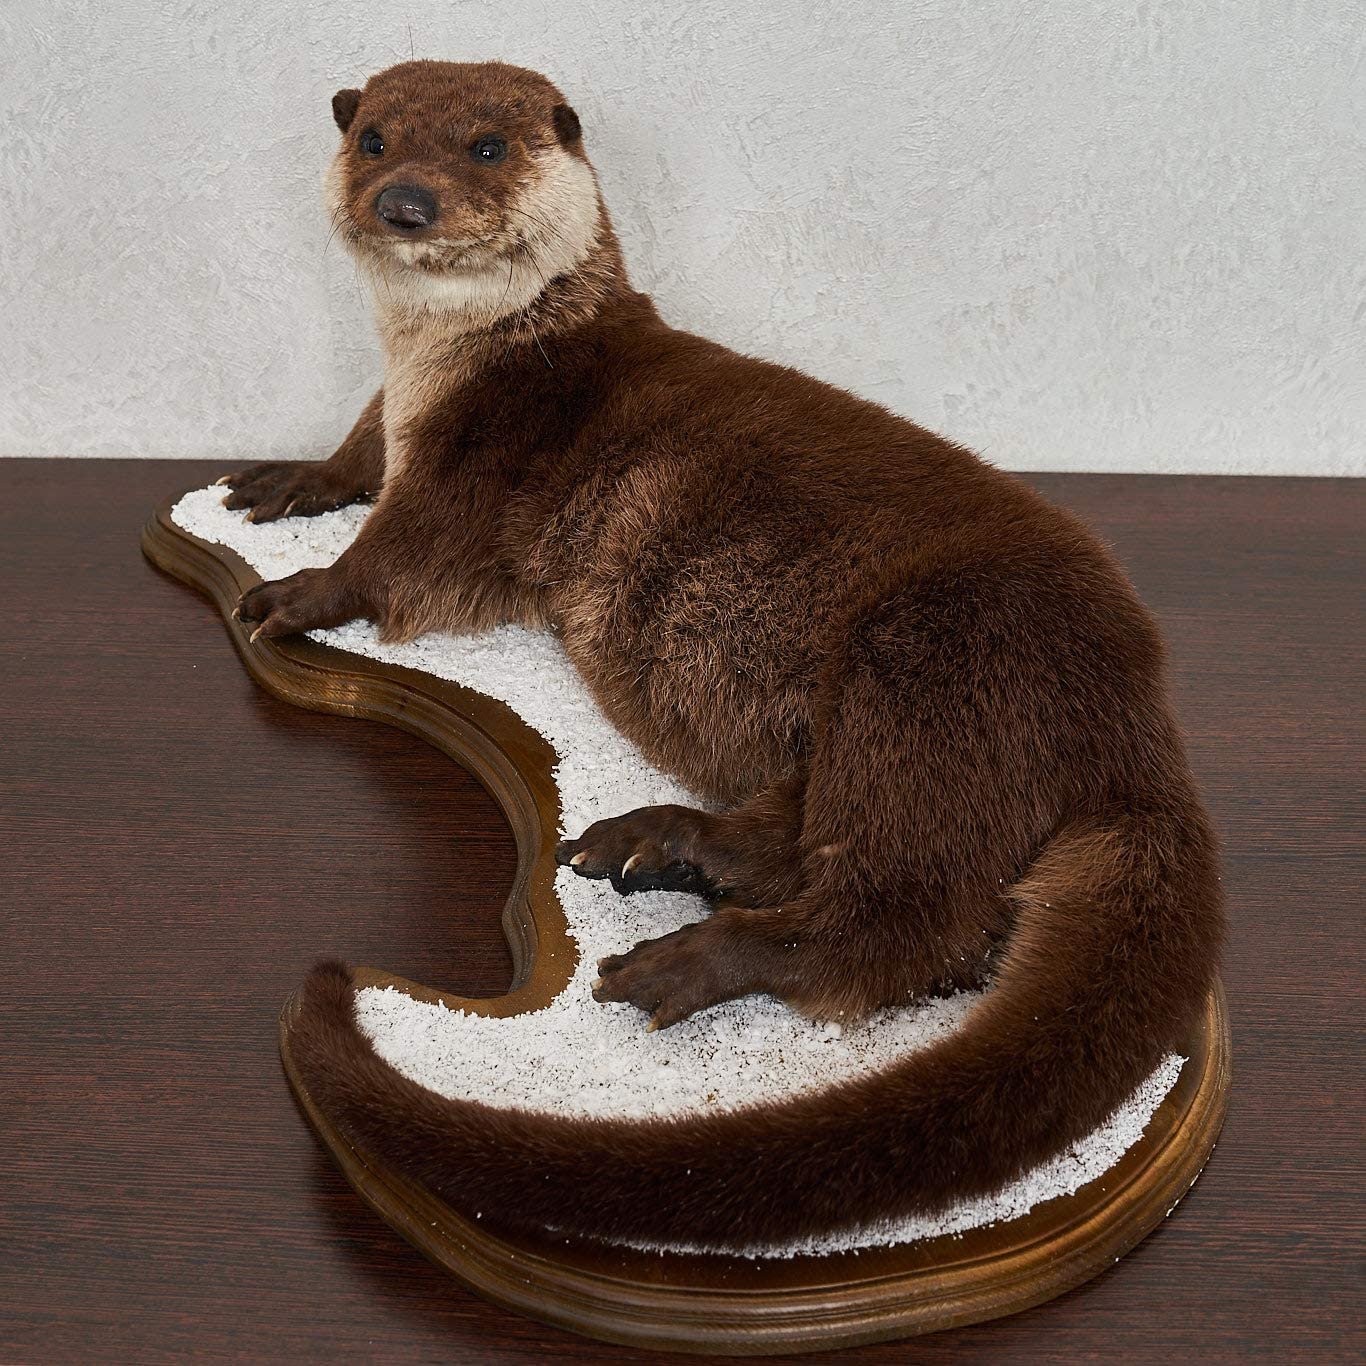 Amazon Com River Otter Taxidermy Mount Mounted Stuffed Animals For Sale Real Decor Lifesize St6355 Sports Outdoors